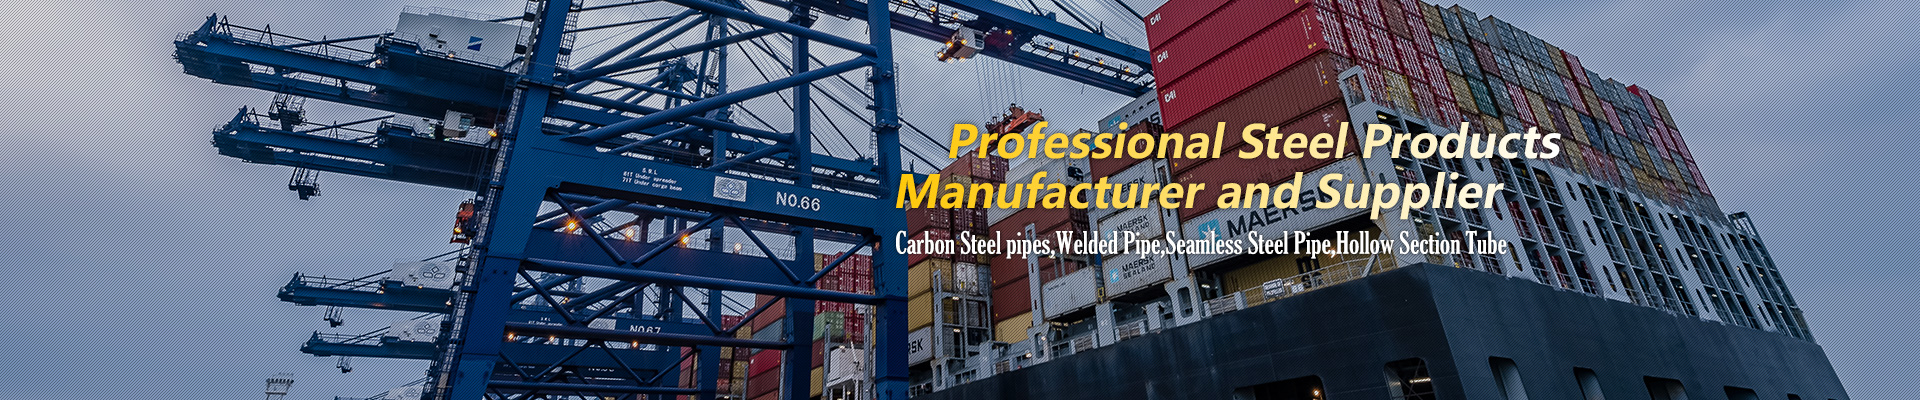 Joho Steel  -- China Professional Manufacturer & Supplier of Carbon Steel pipes,Welded Pipe,Seamless Steel Pipe,Hollow Section Tube...